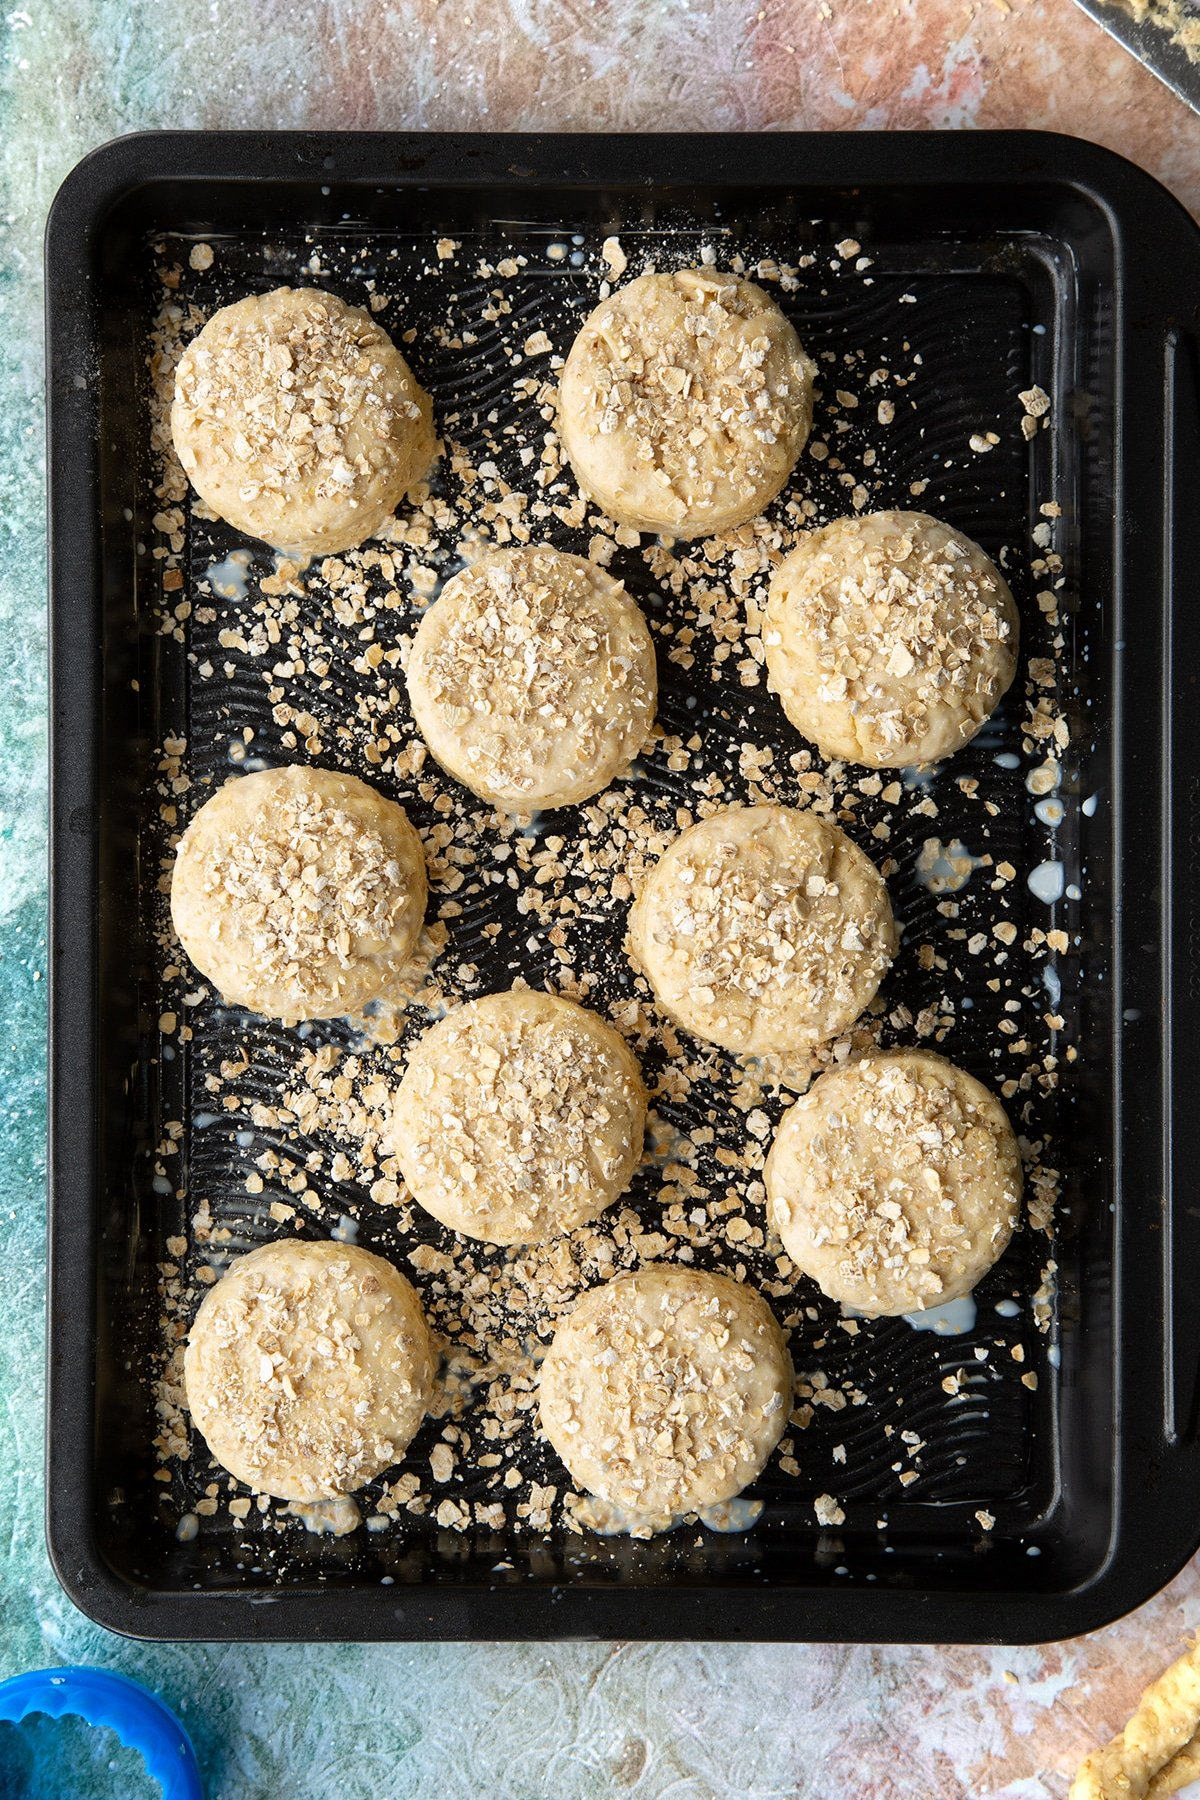 Oatmeal scone rounds of dough, brushed with milk and scattered with oats on a baking tray.